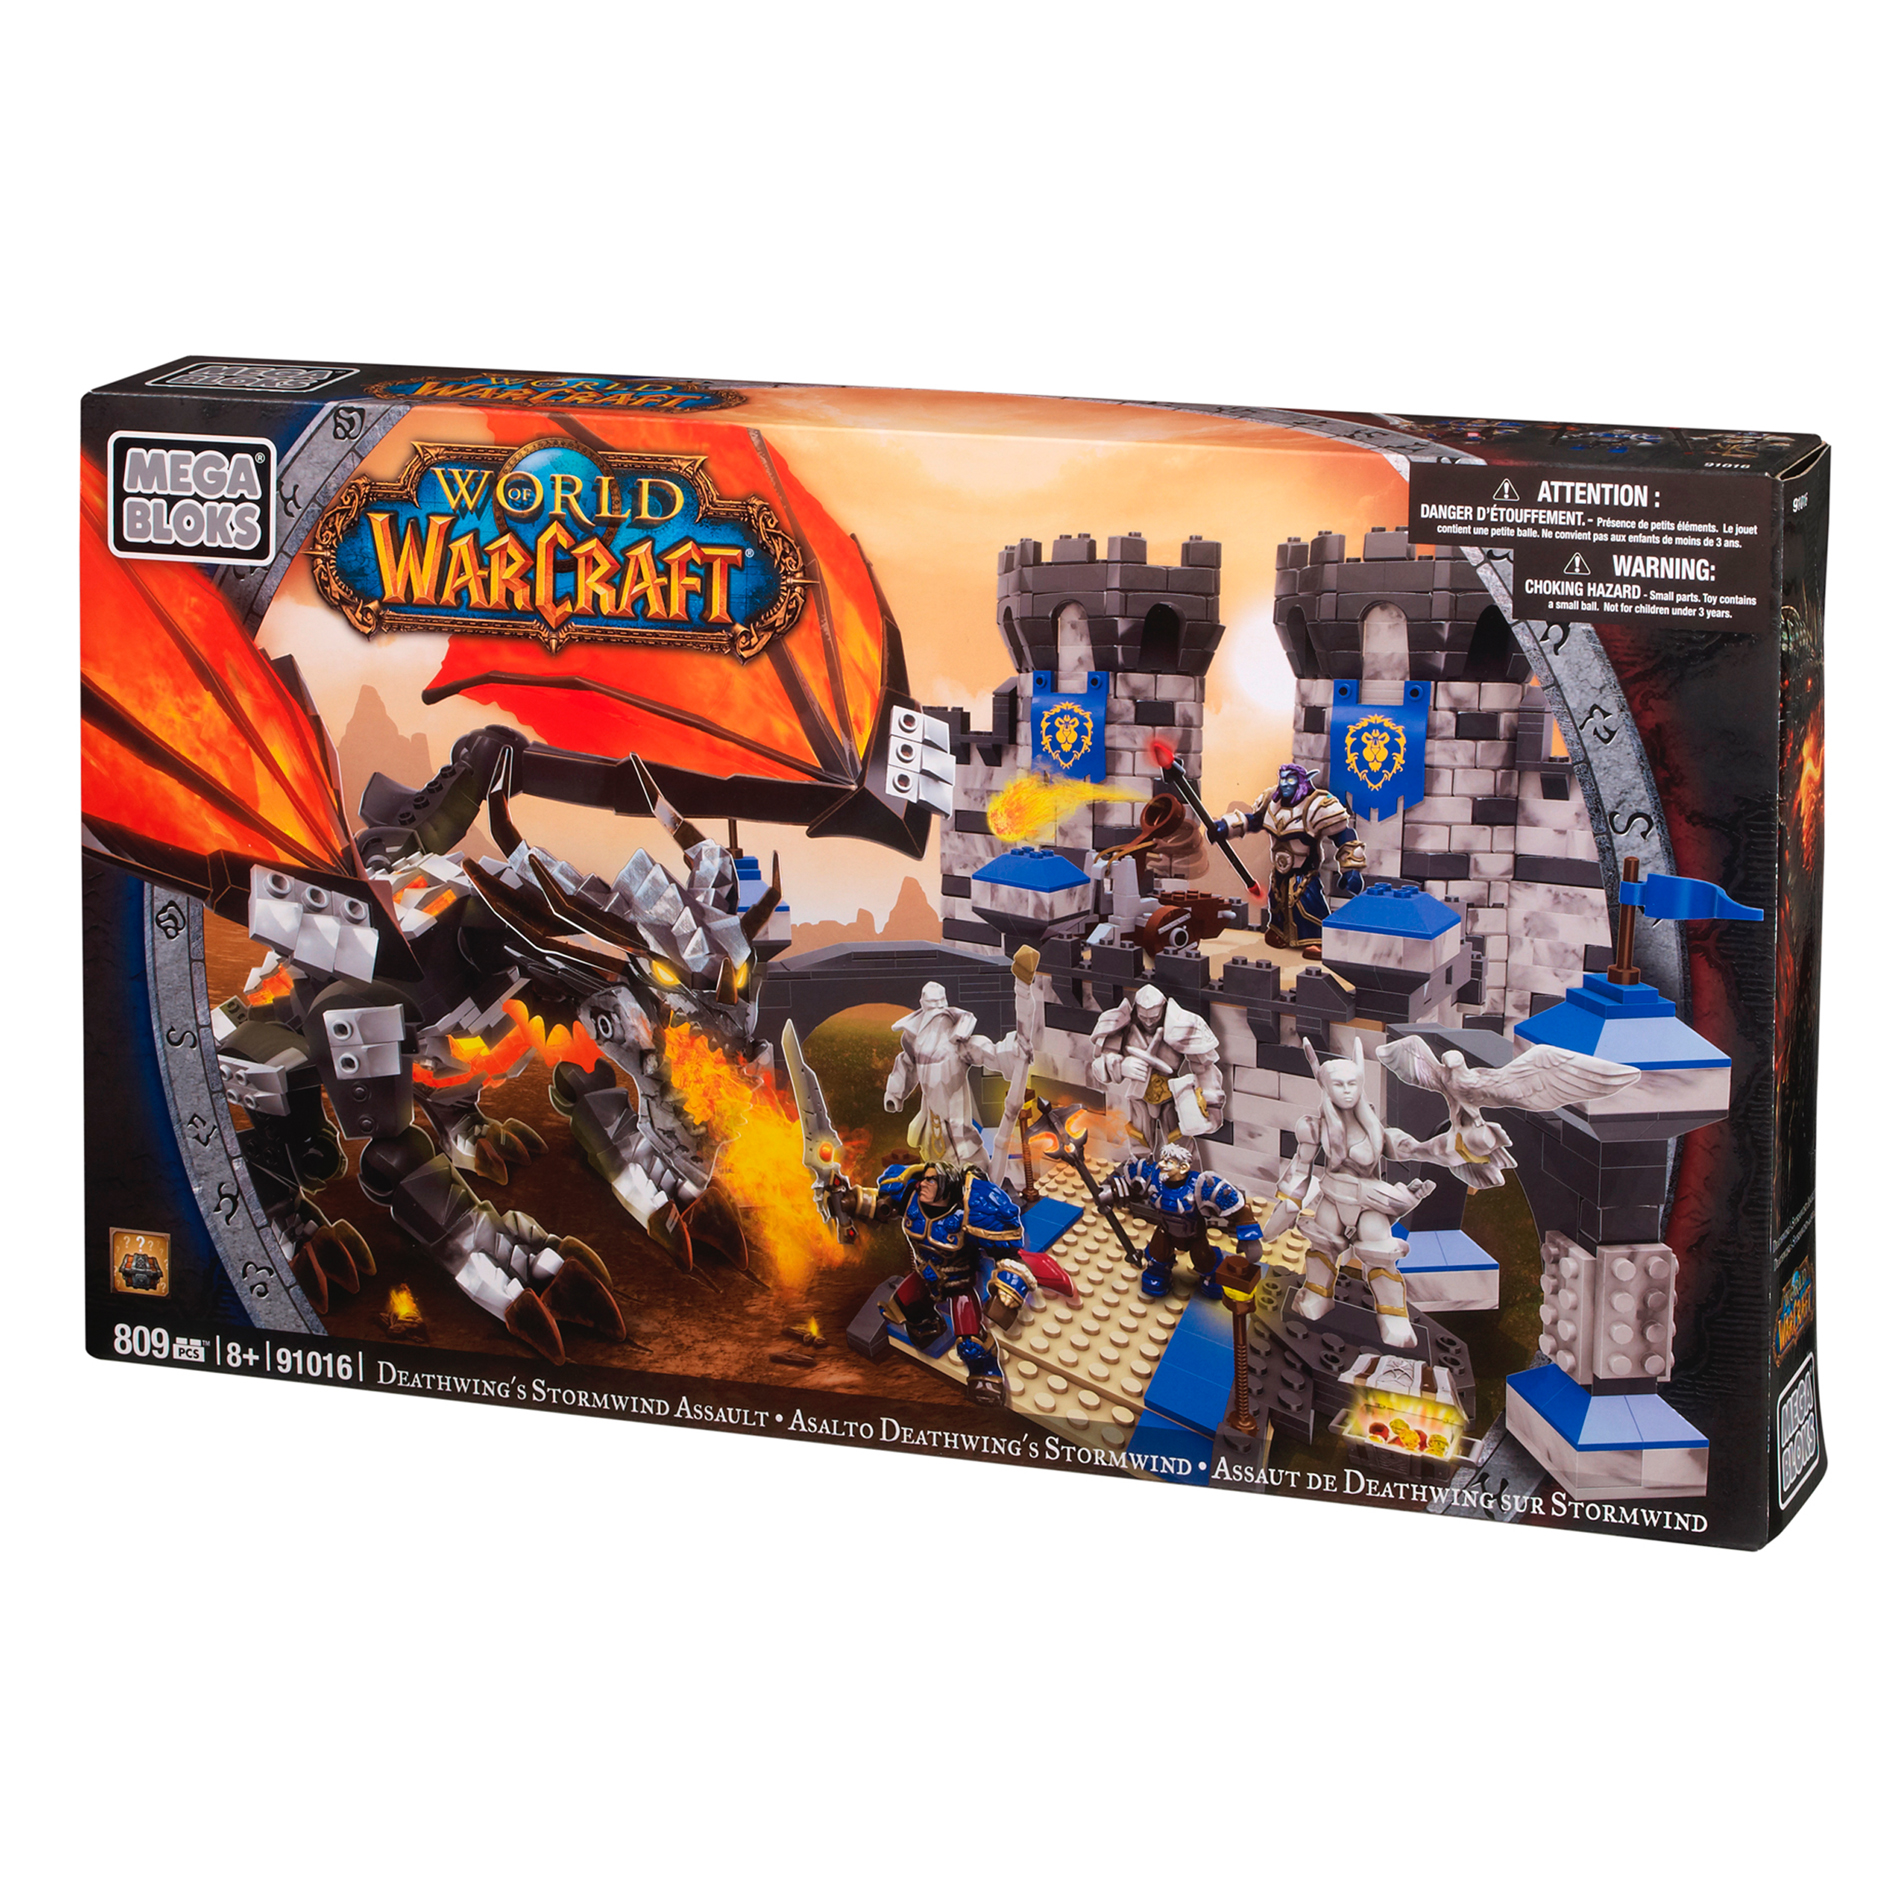 Mega Bloks World of Warcraft Deathwing's Stormwind Assault PartNumber: 004V006375386000P KsnValue: 004V006375386000 MfgPartNumber: 170334